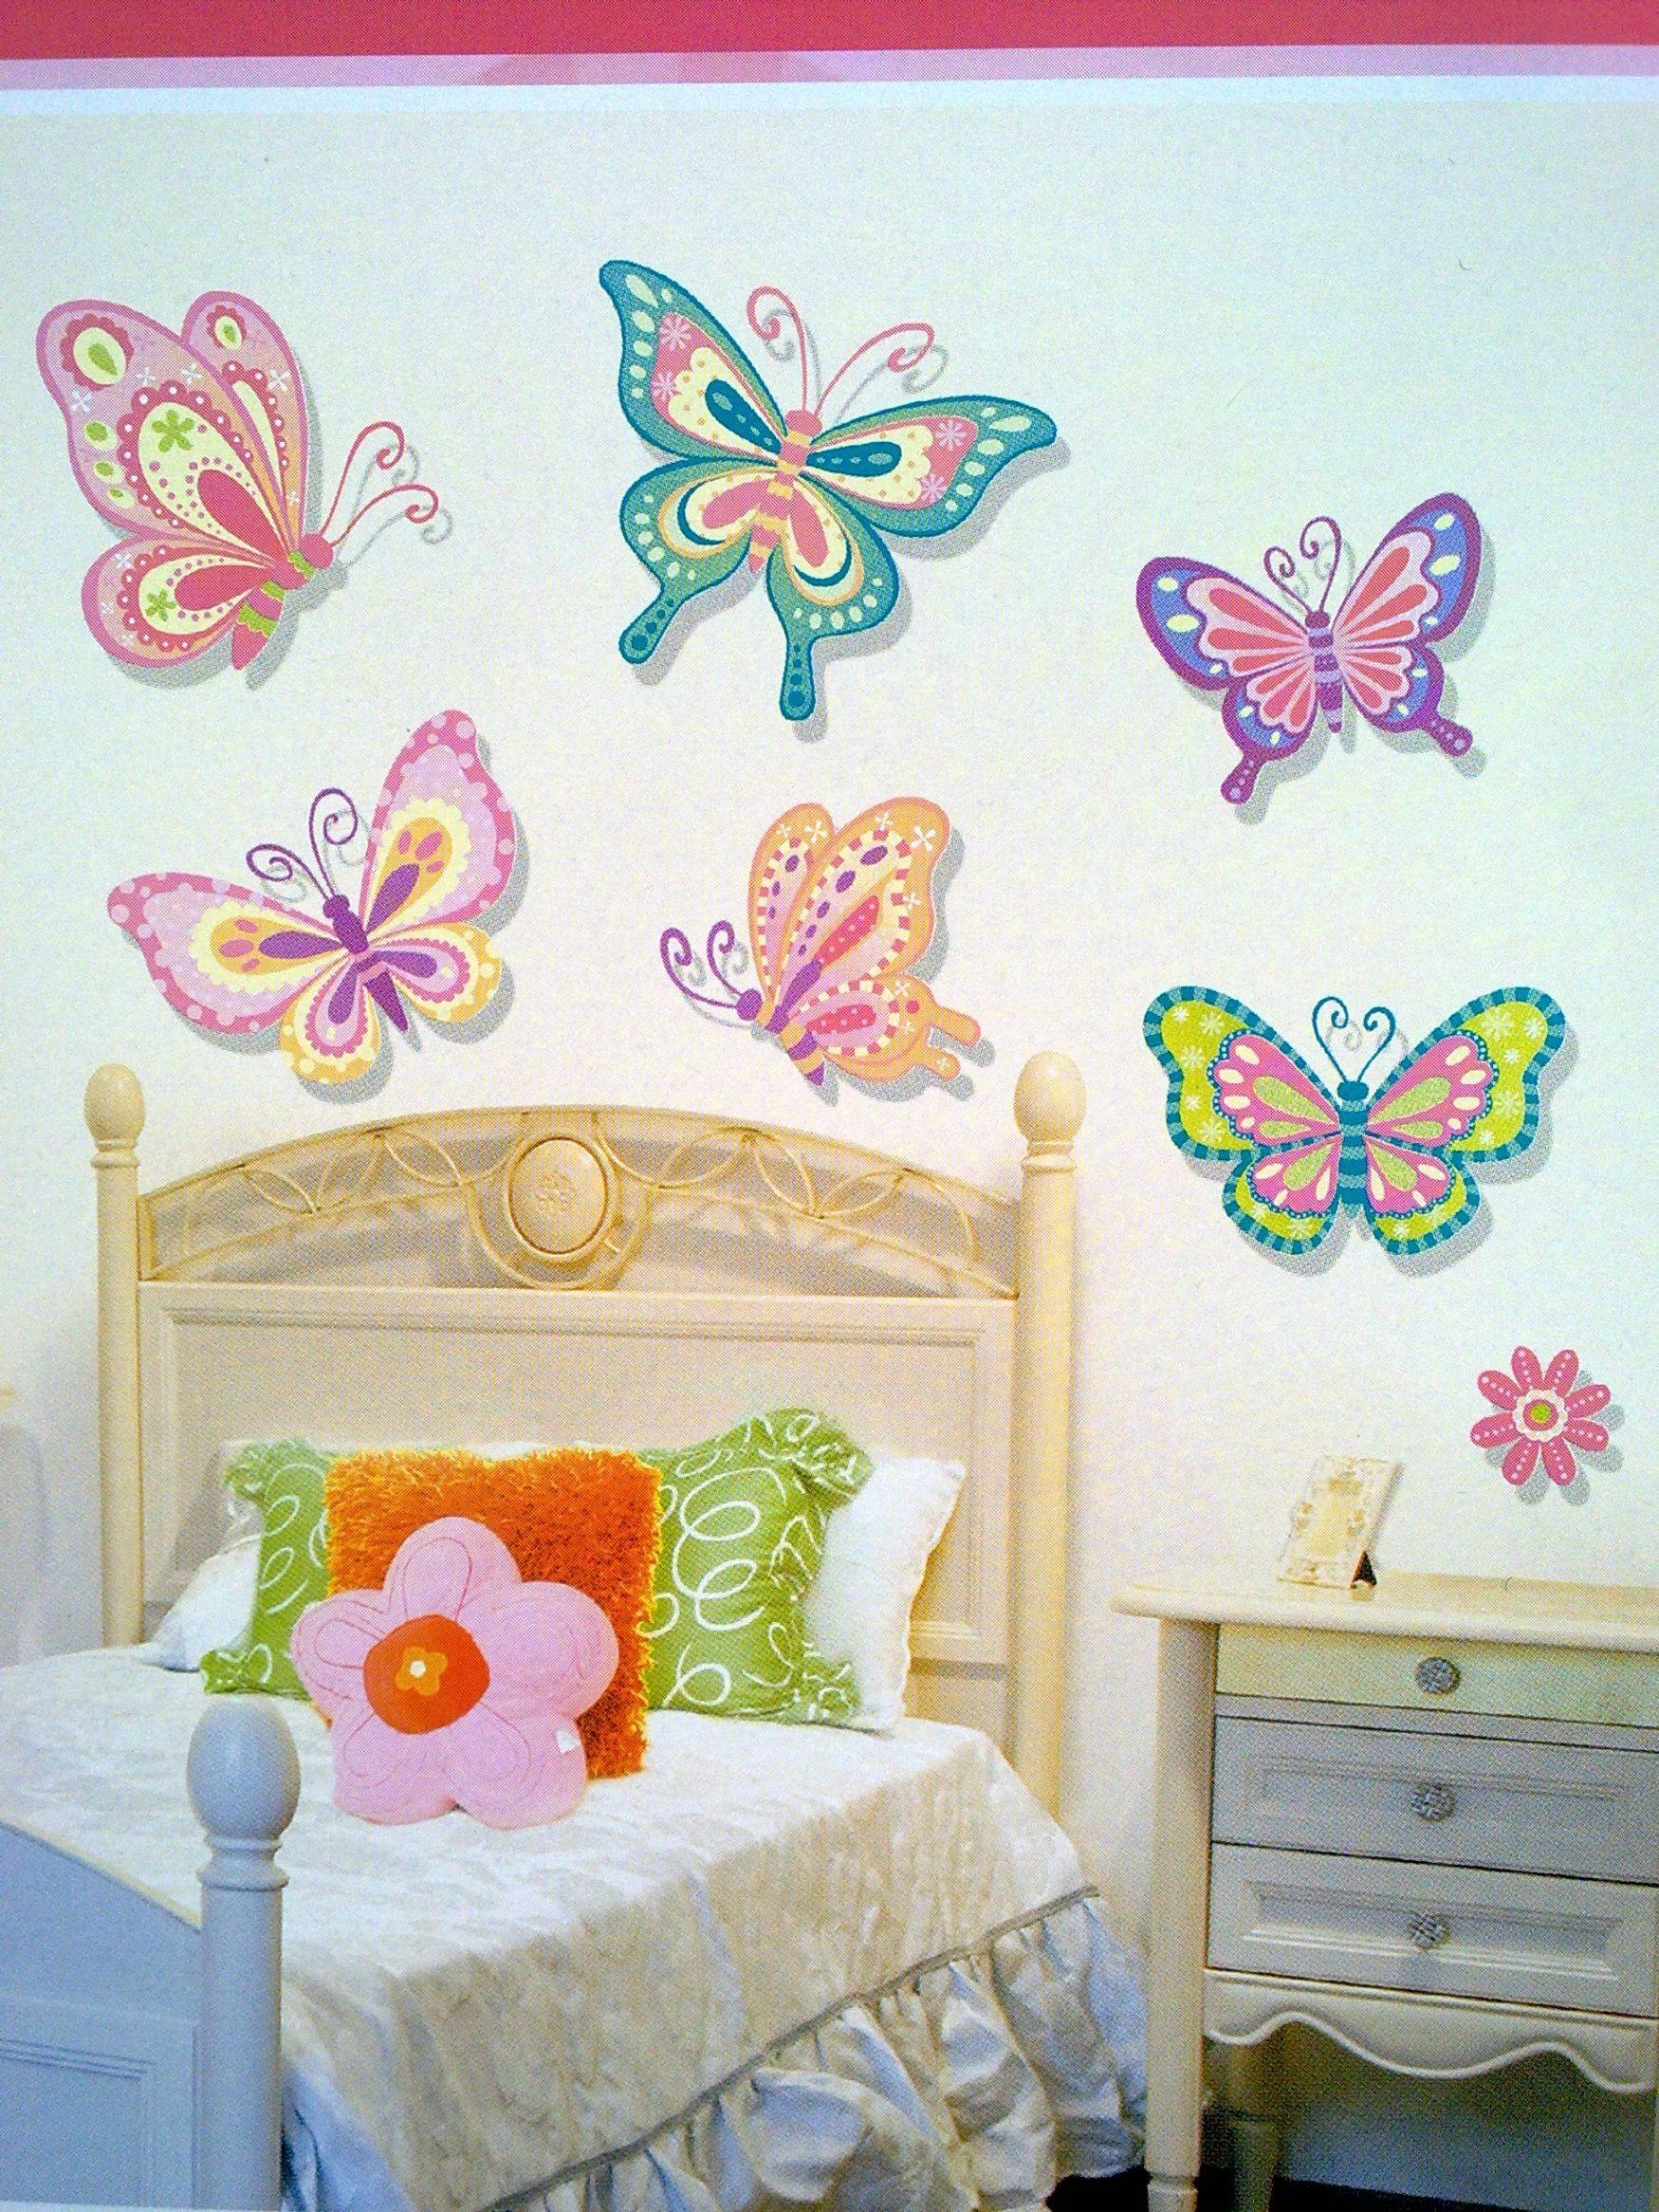 Wall Decor : Full Wall Decals Butterfly Wall Stickers Wall Art With Most Current Fabric Bird Wall Art (View 14 of 15)